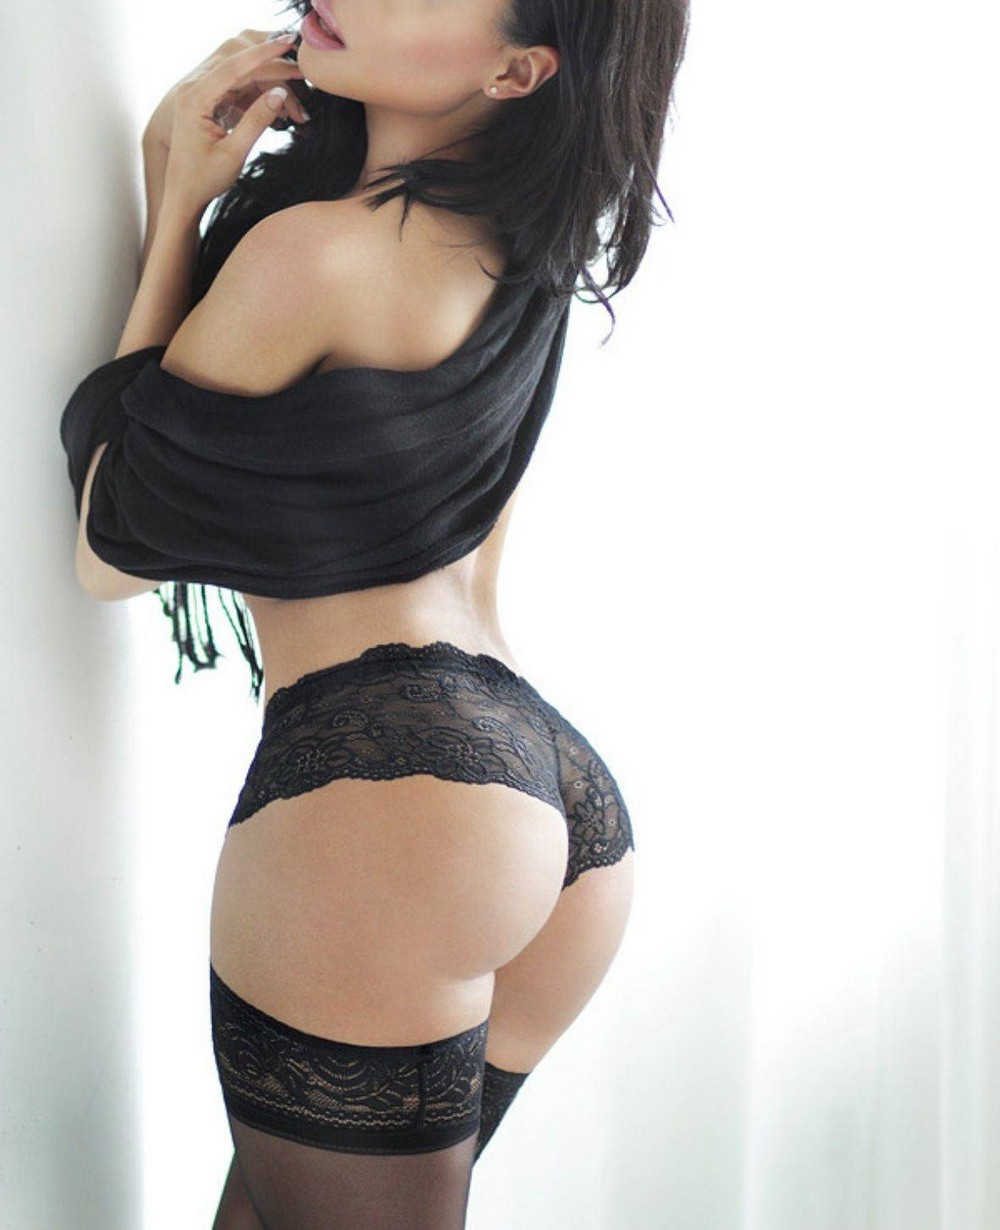 Hot Girls Like To Look So Sexy (56 Photos)